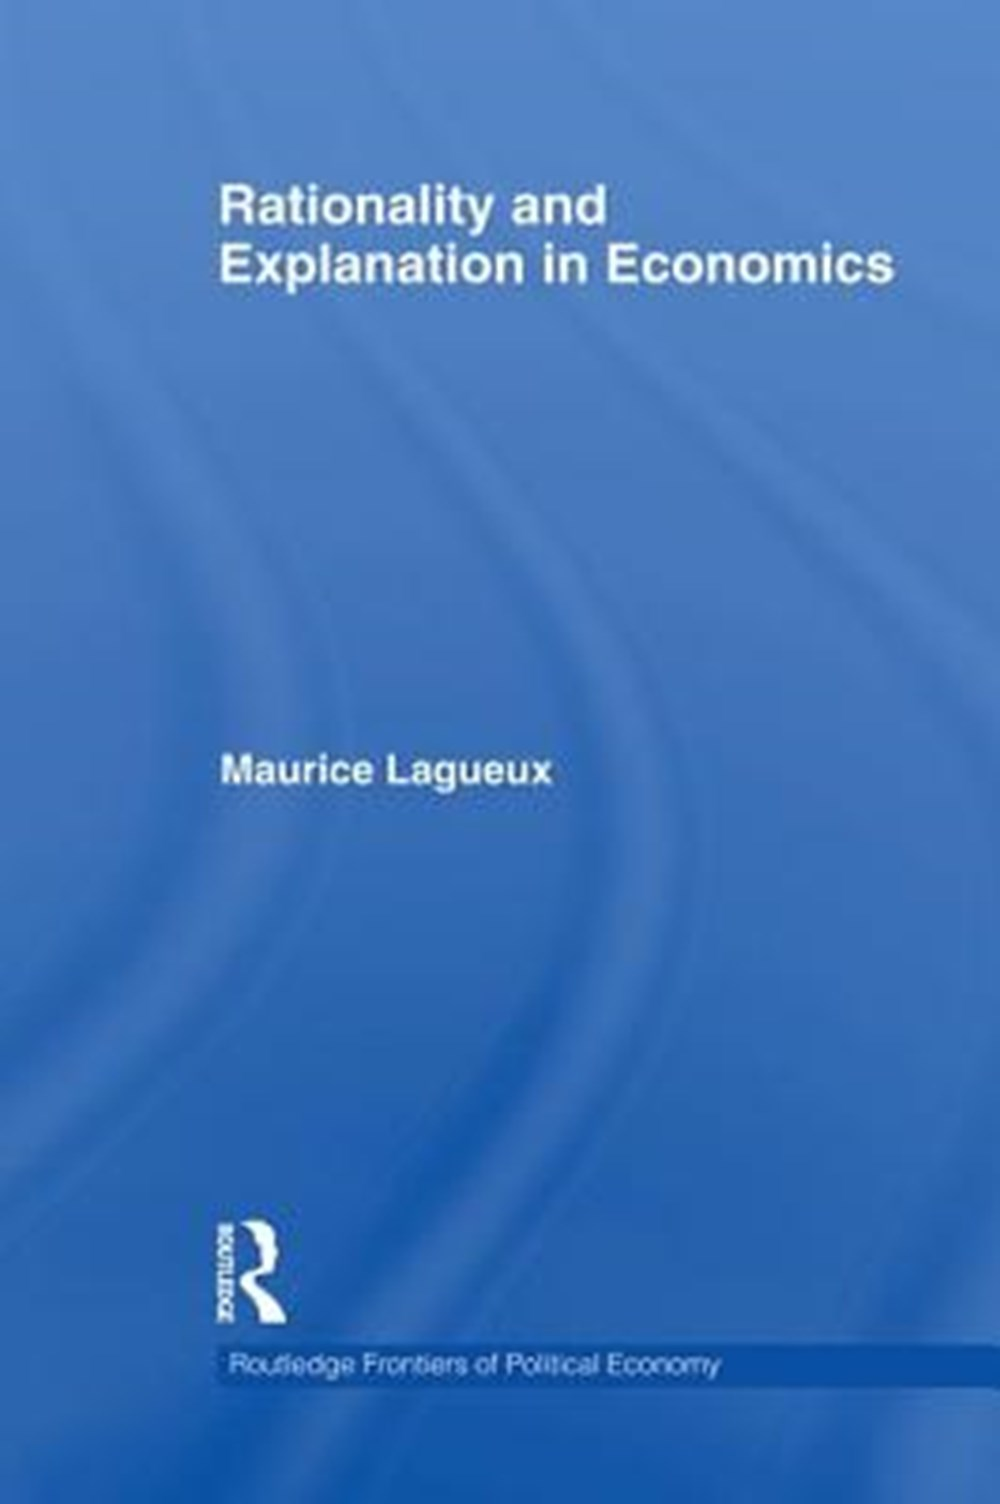 Rationality and Explanation in Economics